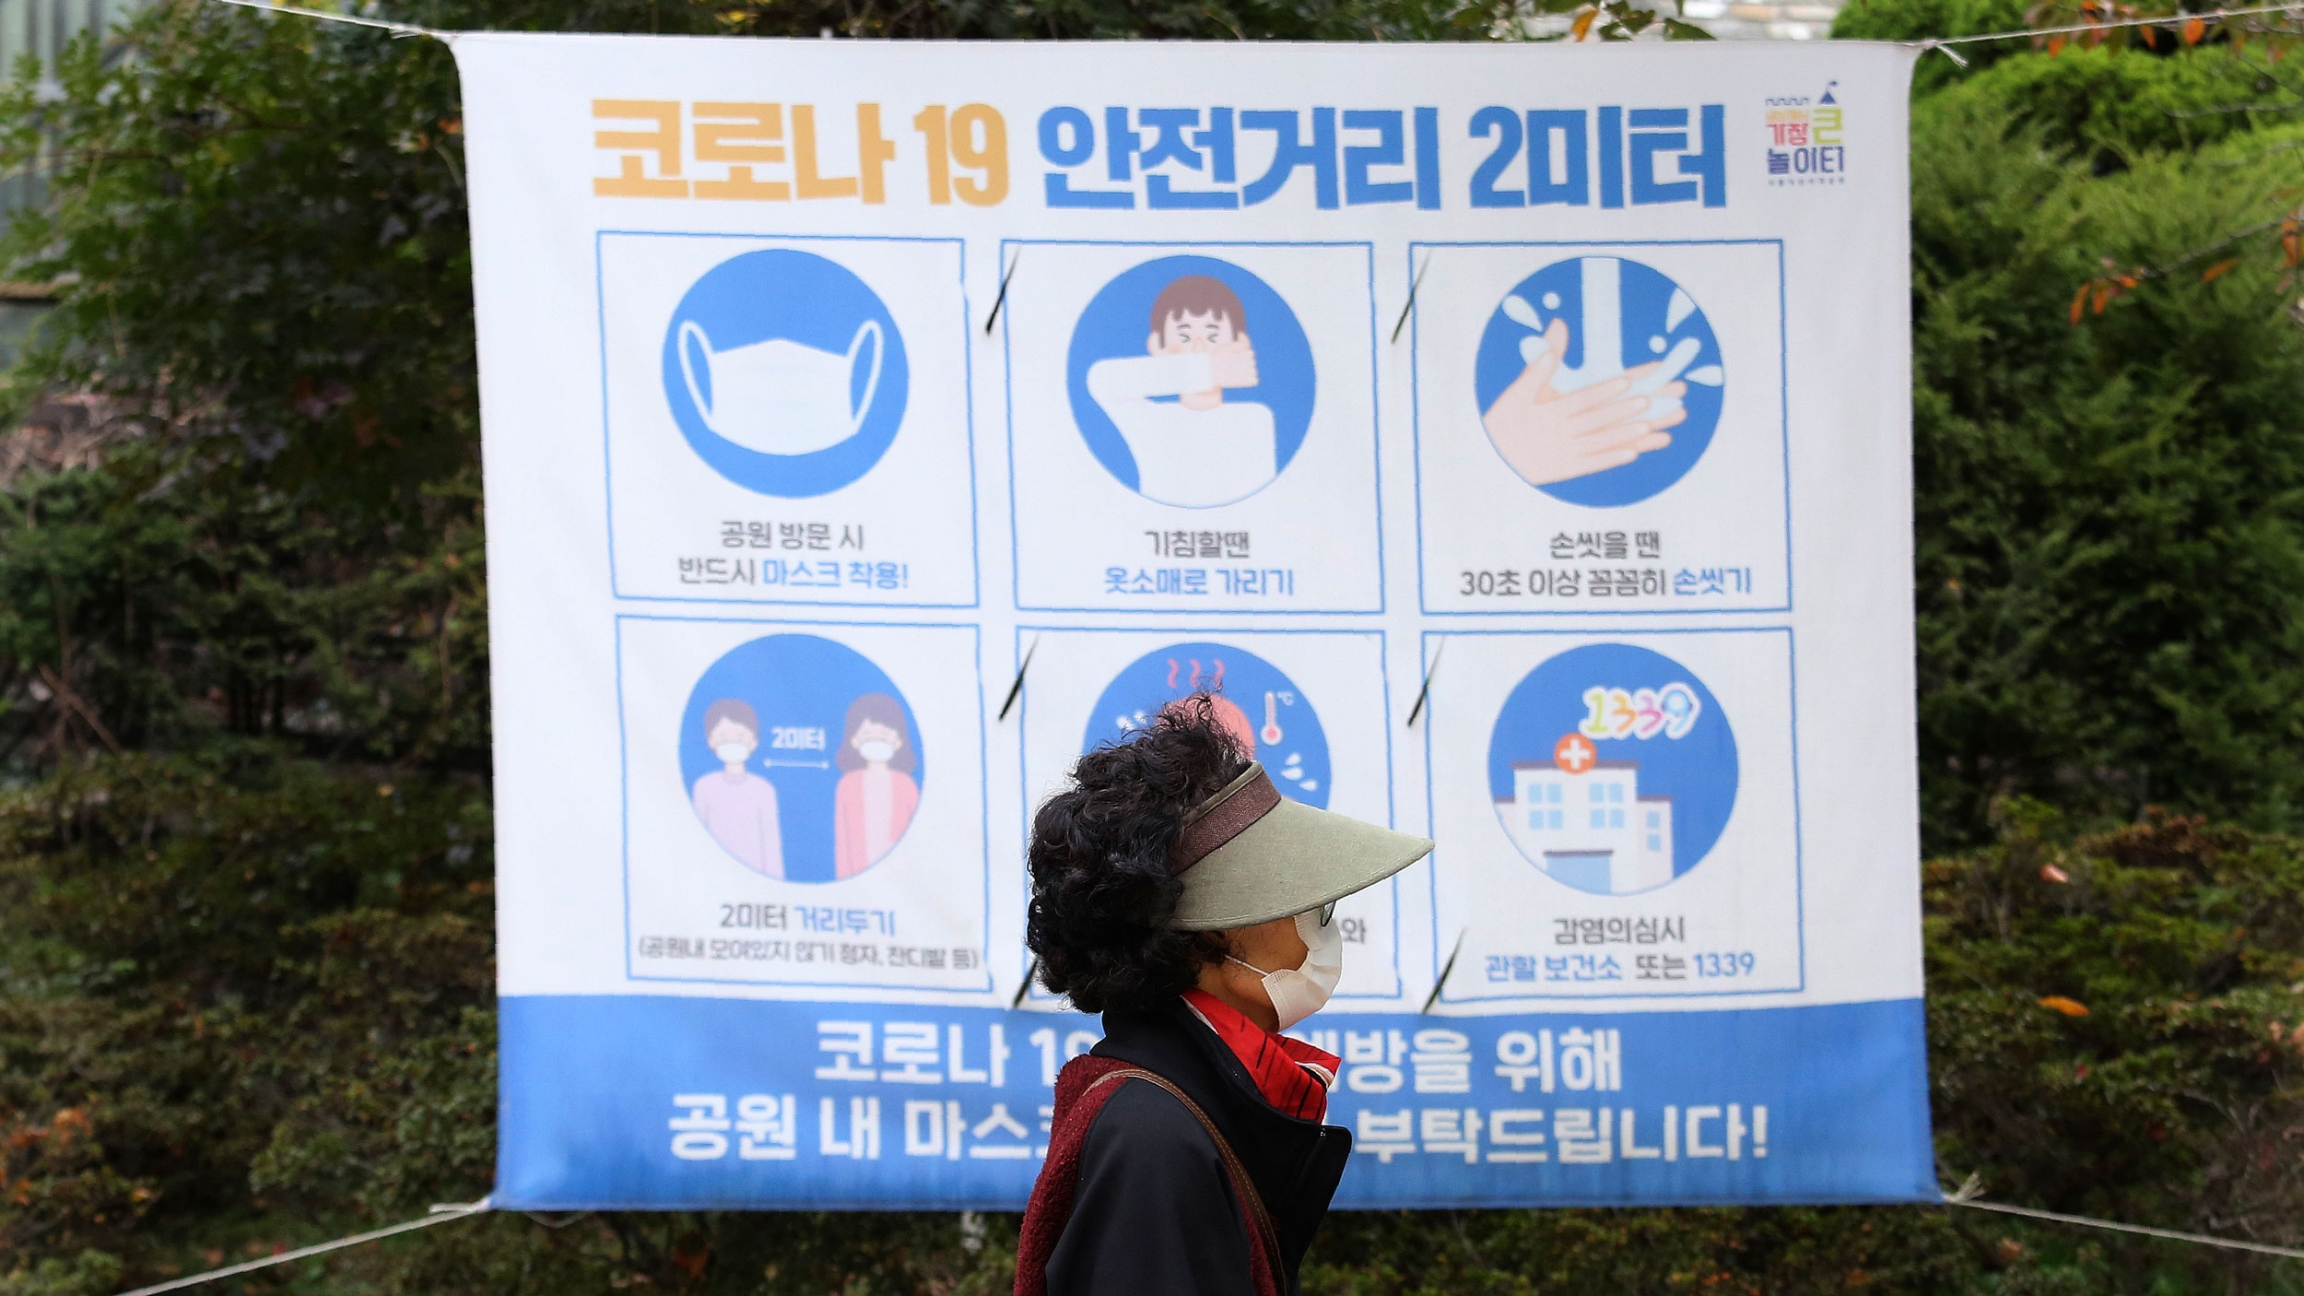 A woman is shown wearing a visor and face mask while walking past a poster with guidance on stopping the spread of the coronavirus.